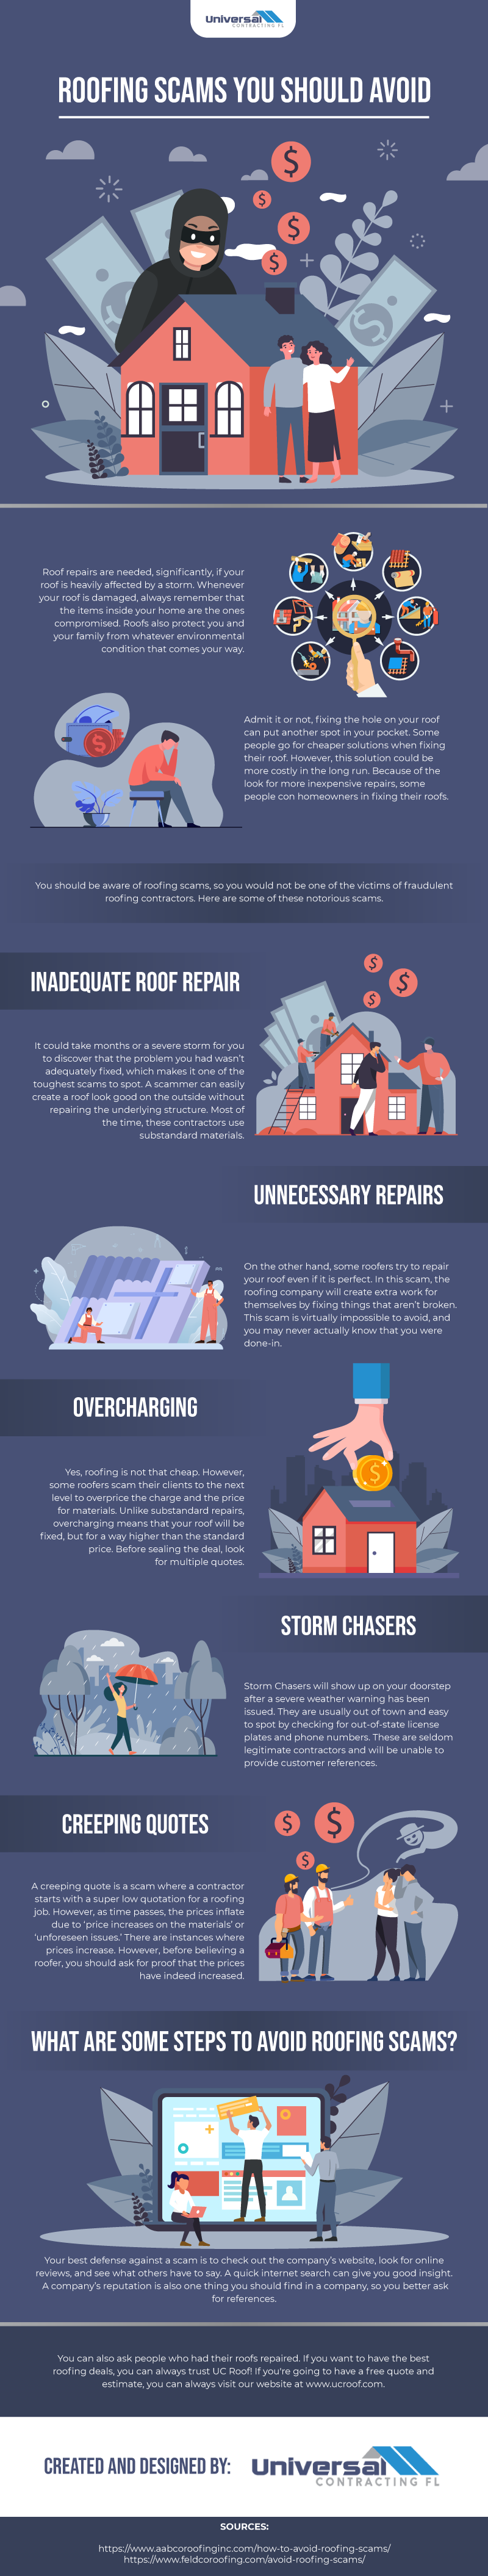 Roofing Scams You Should Avoid - Infographic